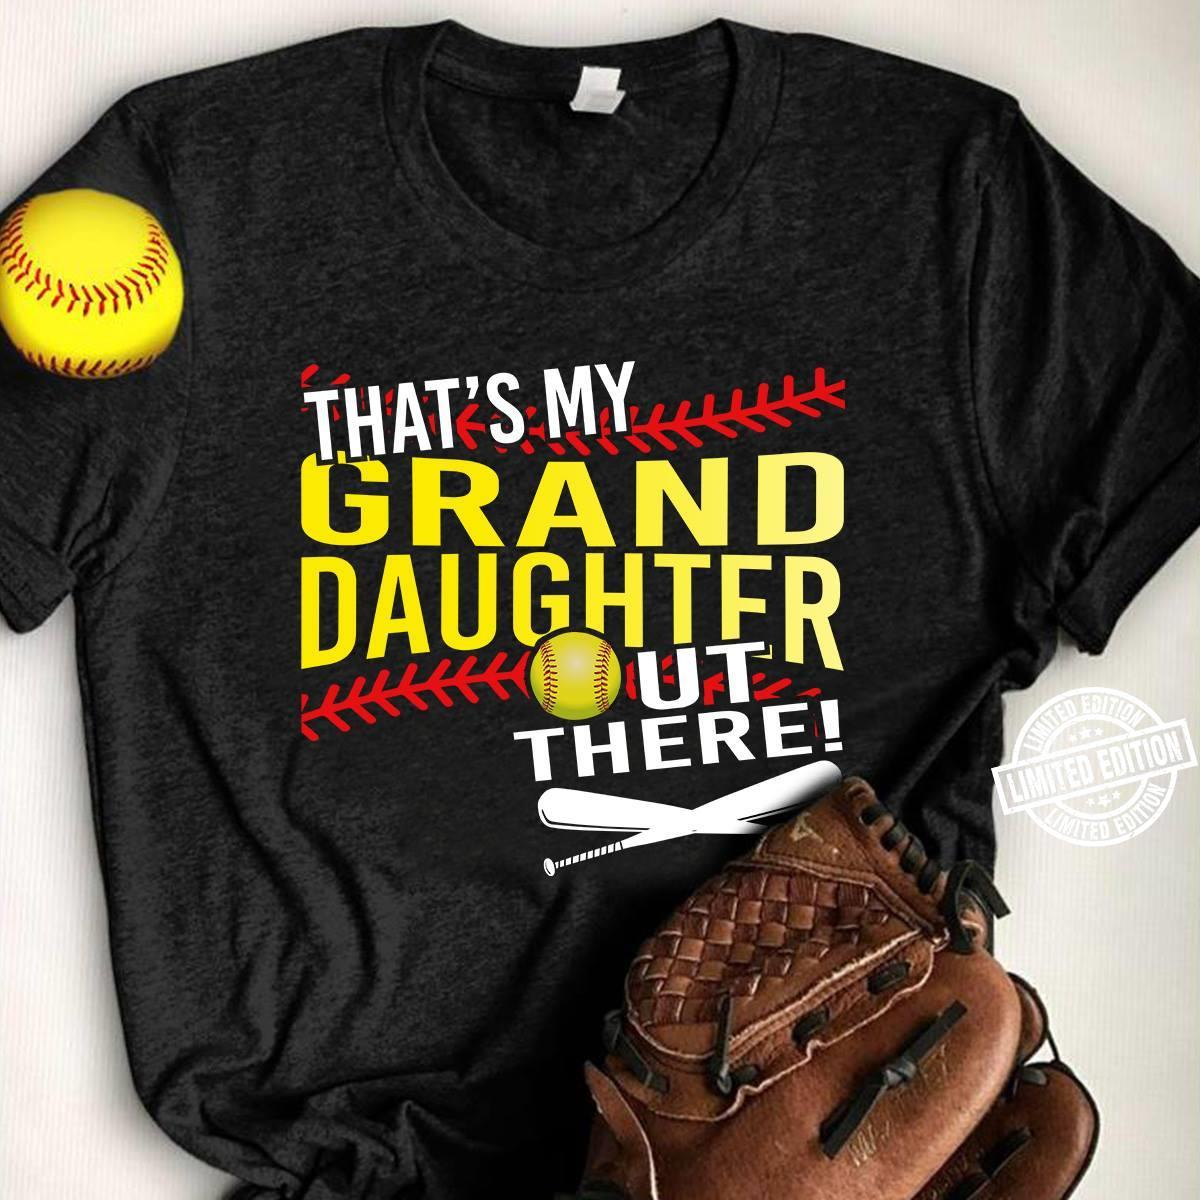 That's my grand daughter put there shirt